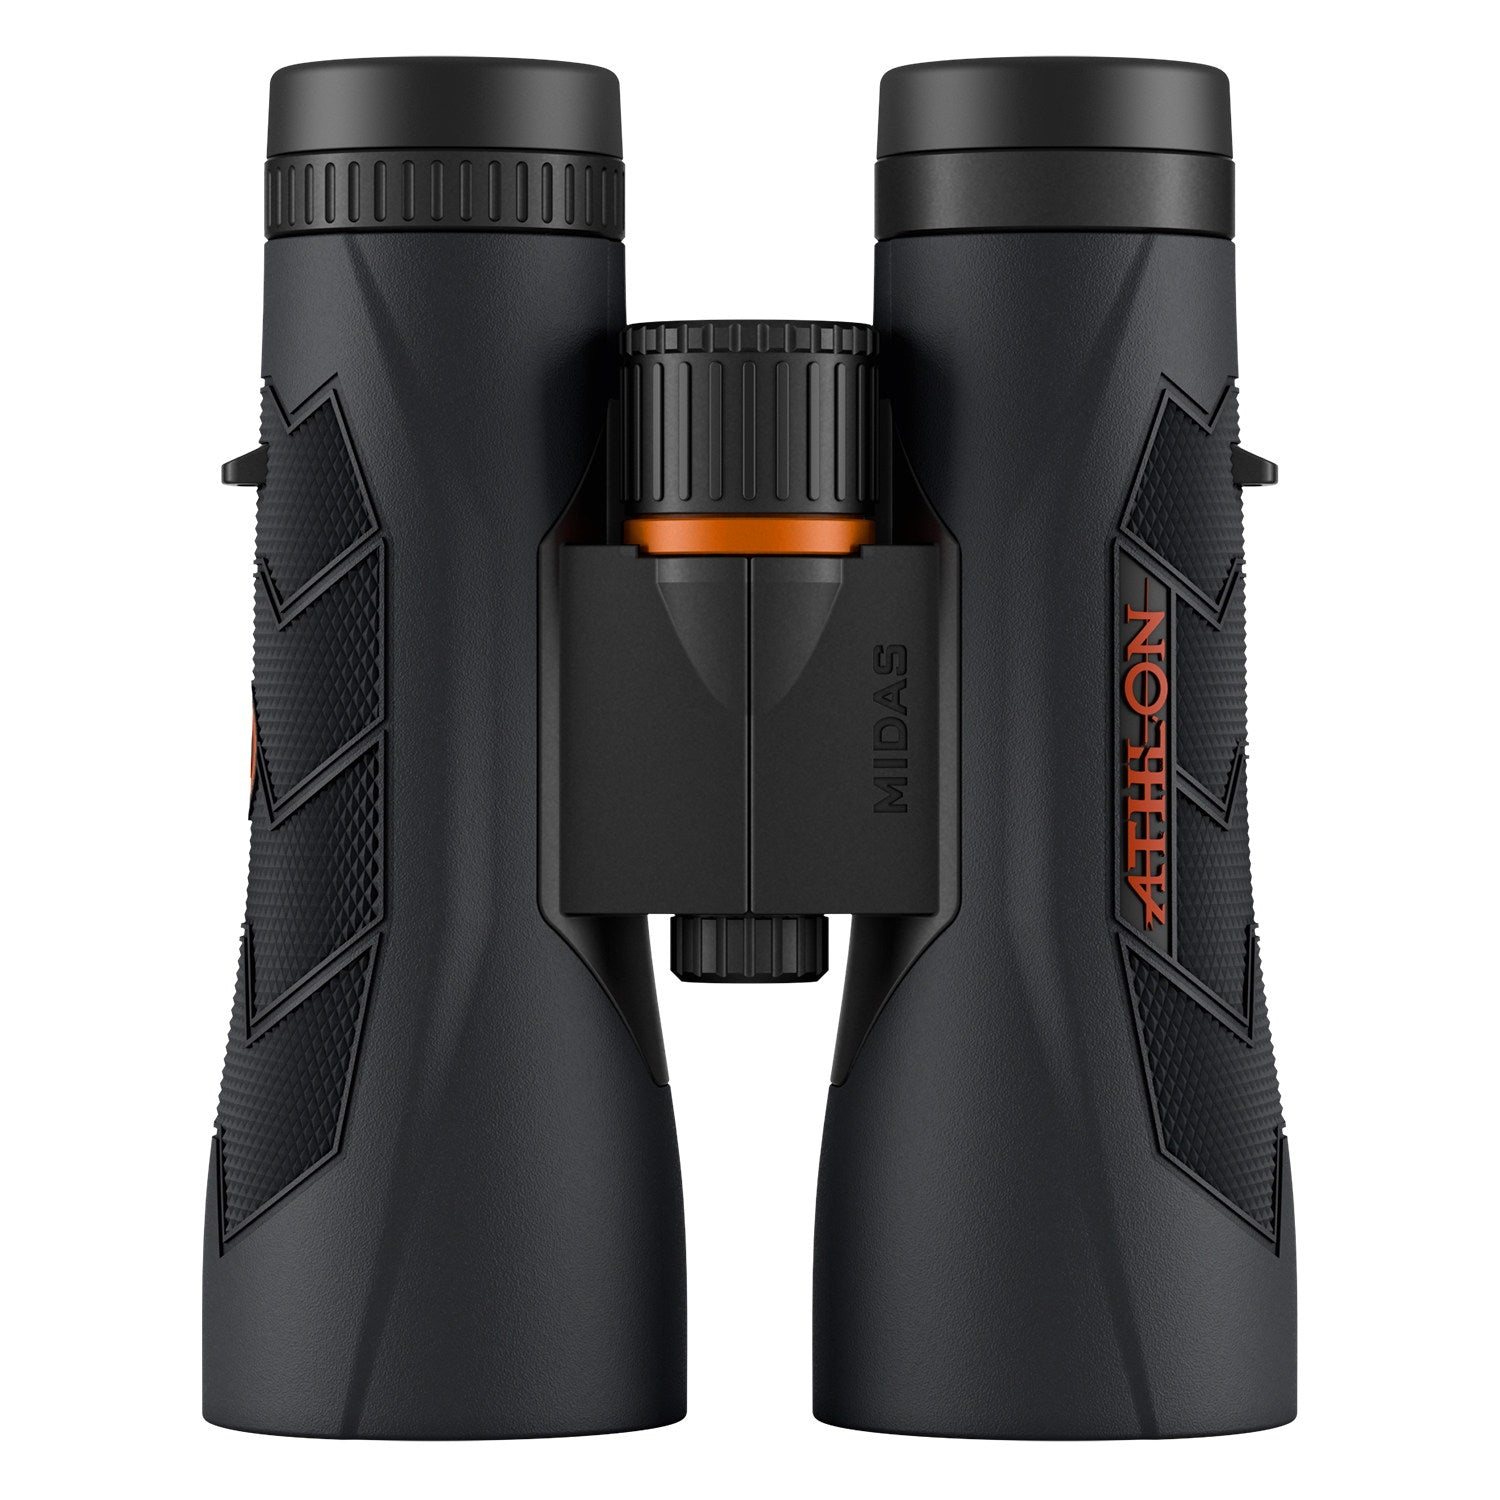 Athlon Optics Midas G2 12x50mm UHD Binoculars